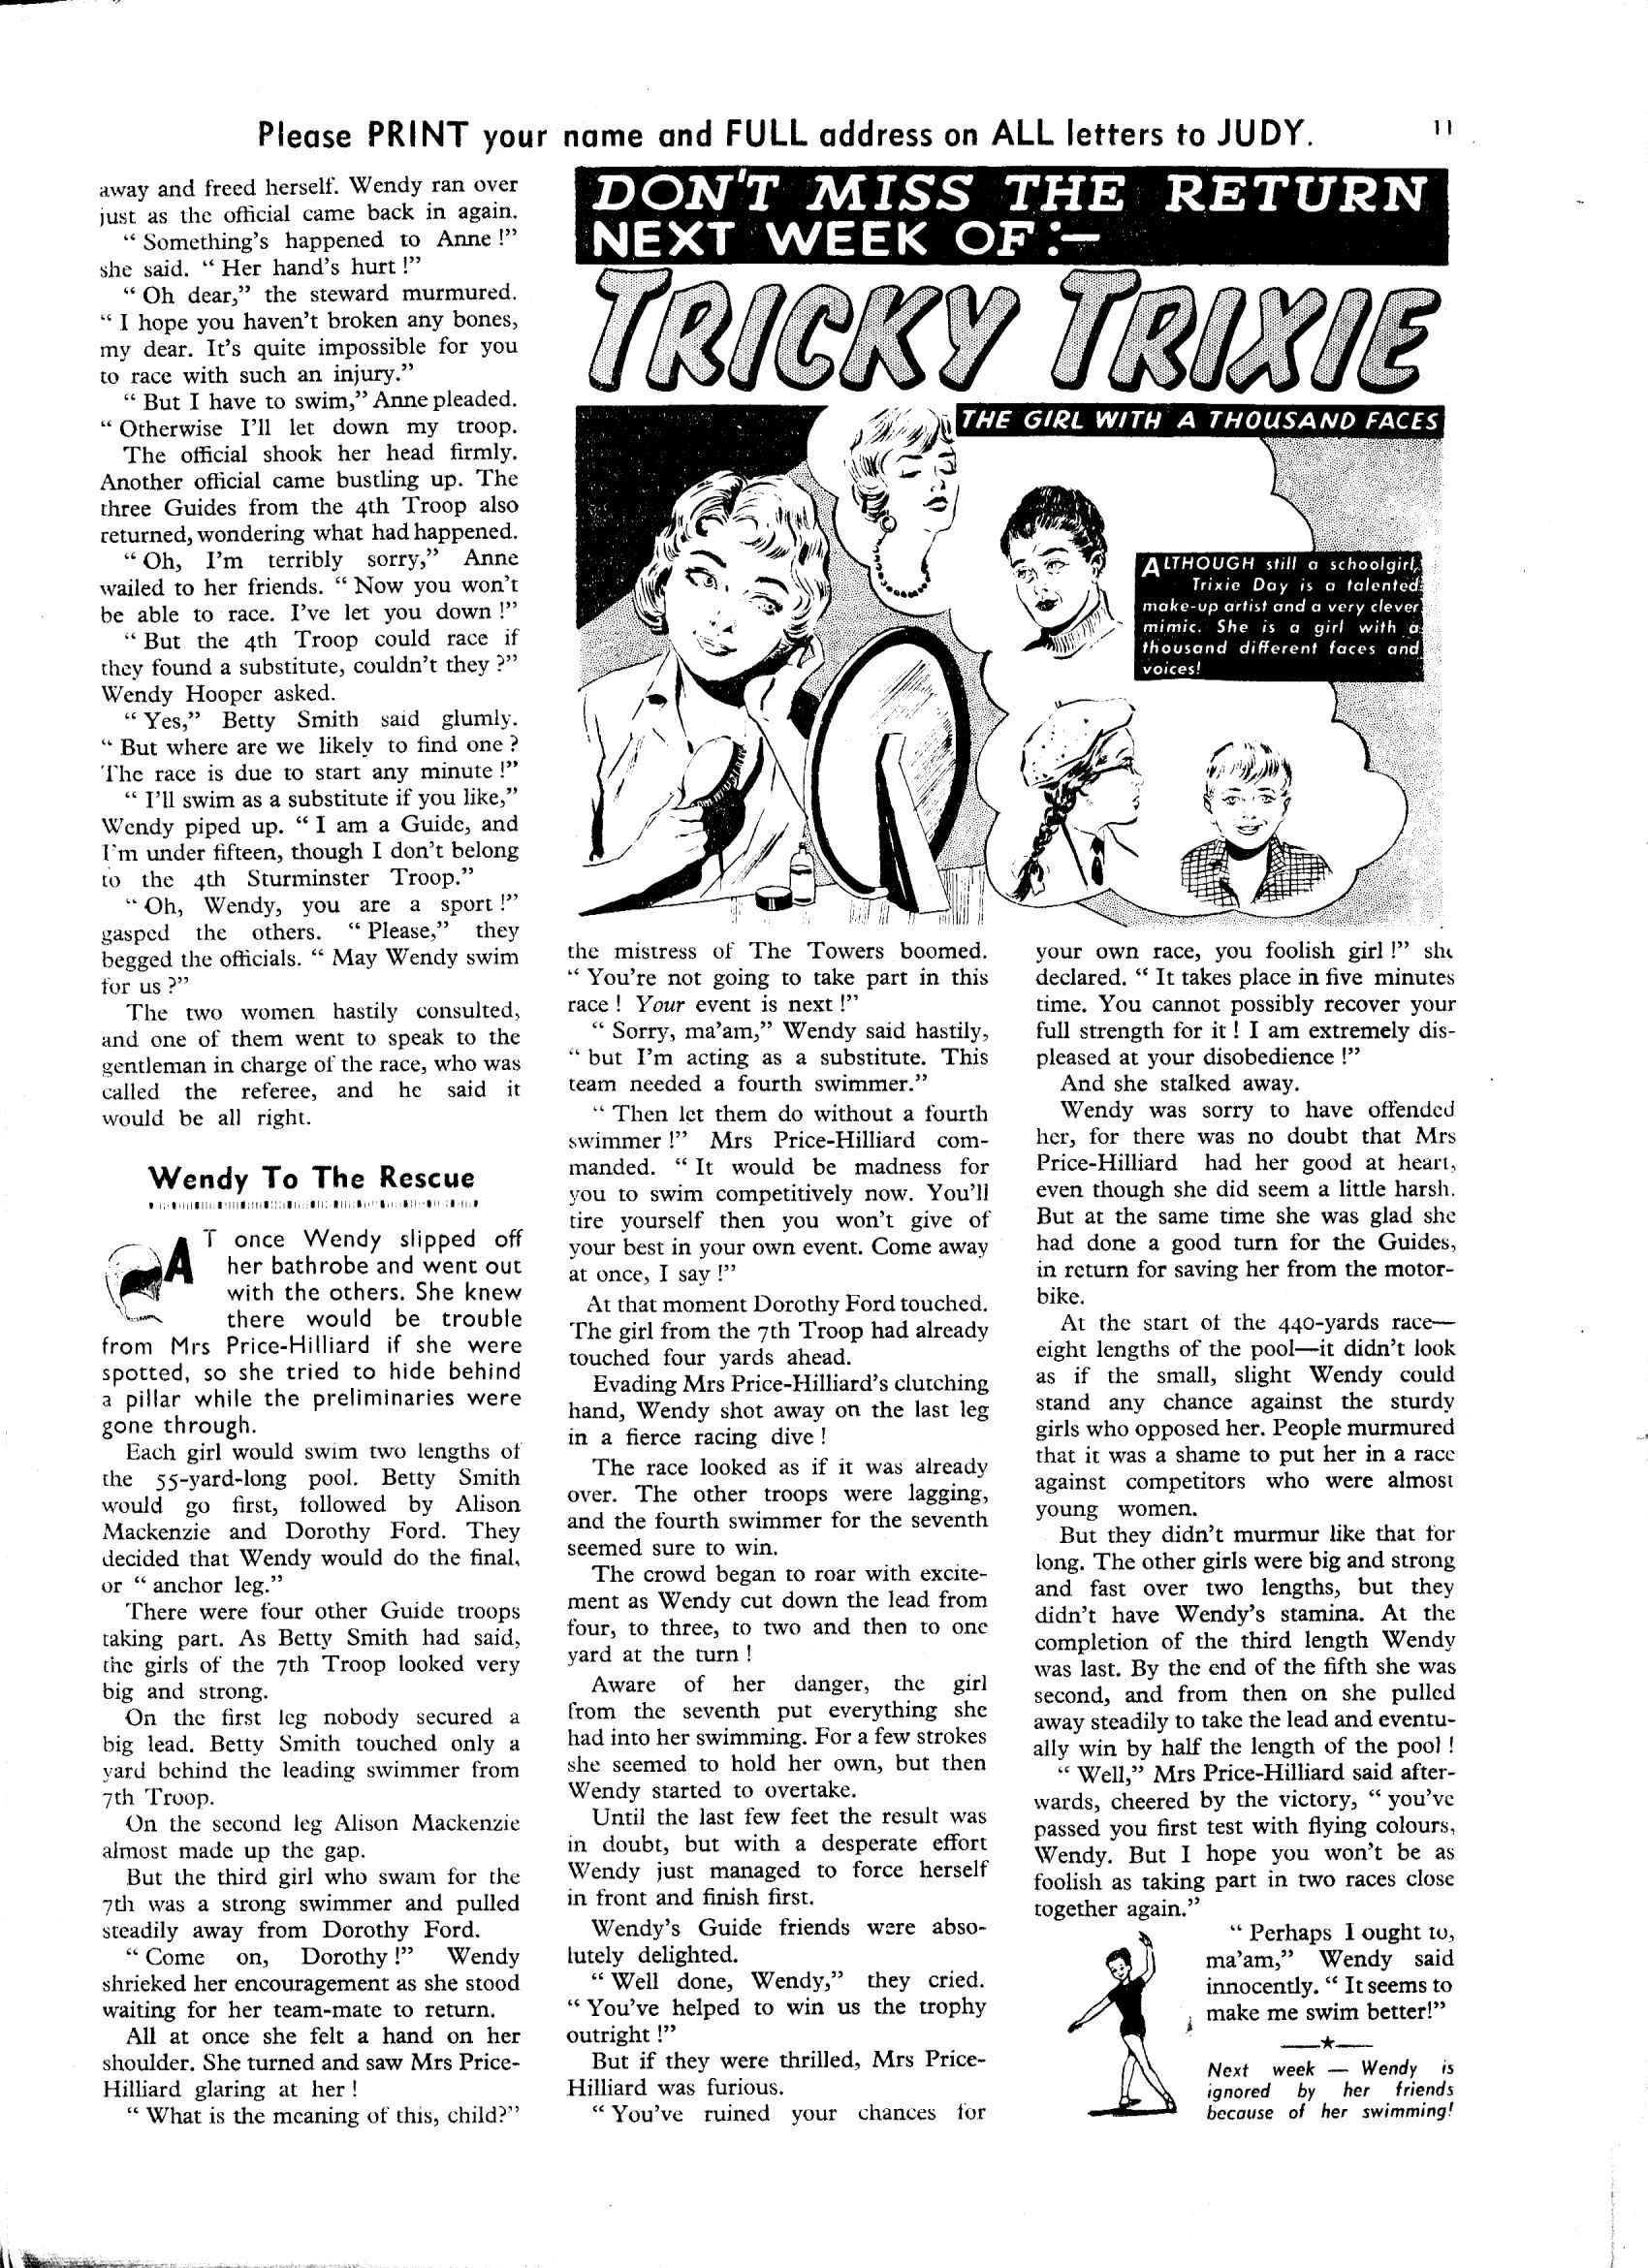 Read online Judy comic -  Issue #32 - 11